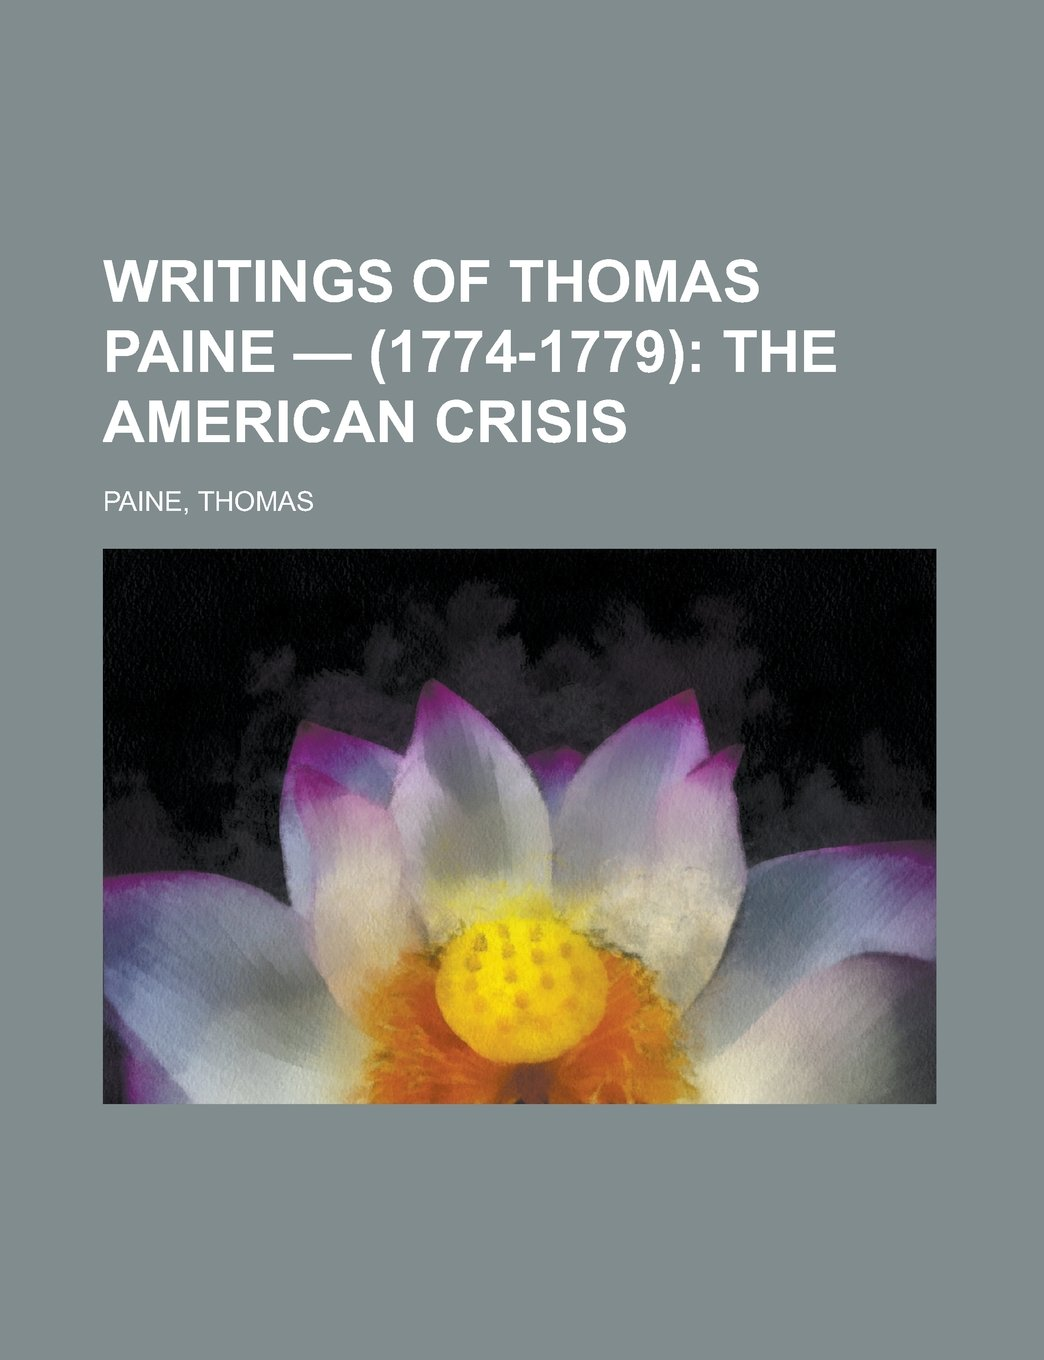 Buy Writings of Thomas Paine - (1774-1779); The American Crisis Volume 1  Book Online at Low Prices in India | Writings of Thomas Paine - (1774-1779);  The ...